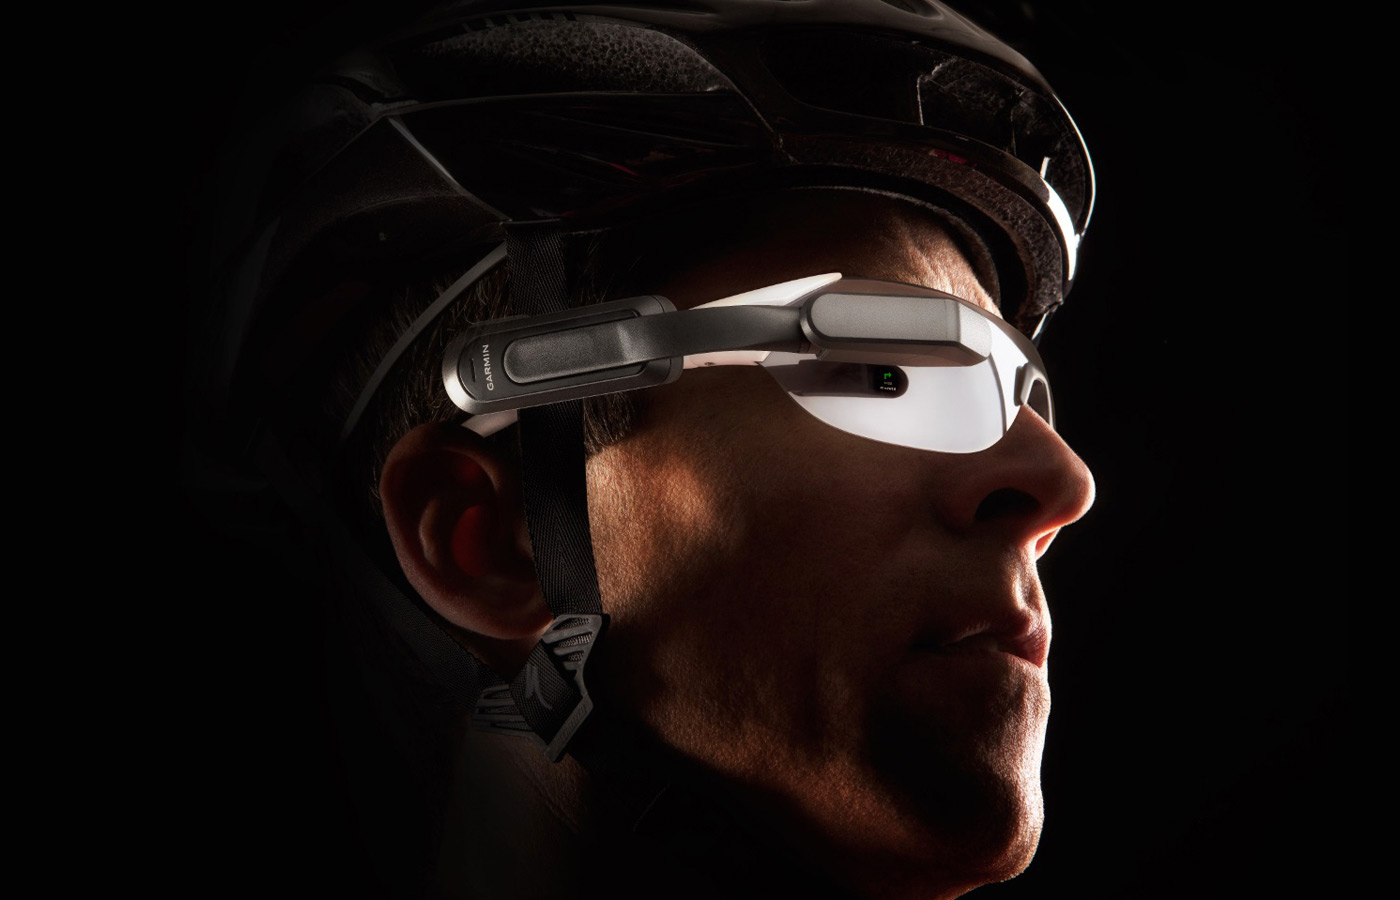 Garmin bike headset warns about traffic behind you